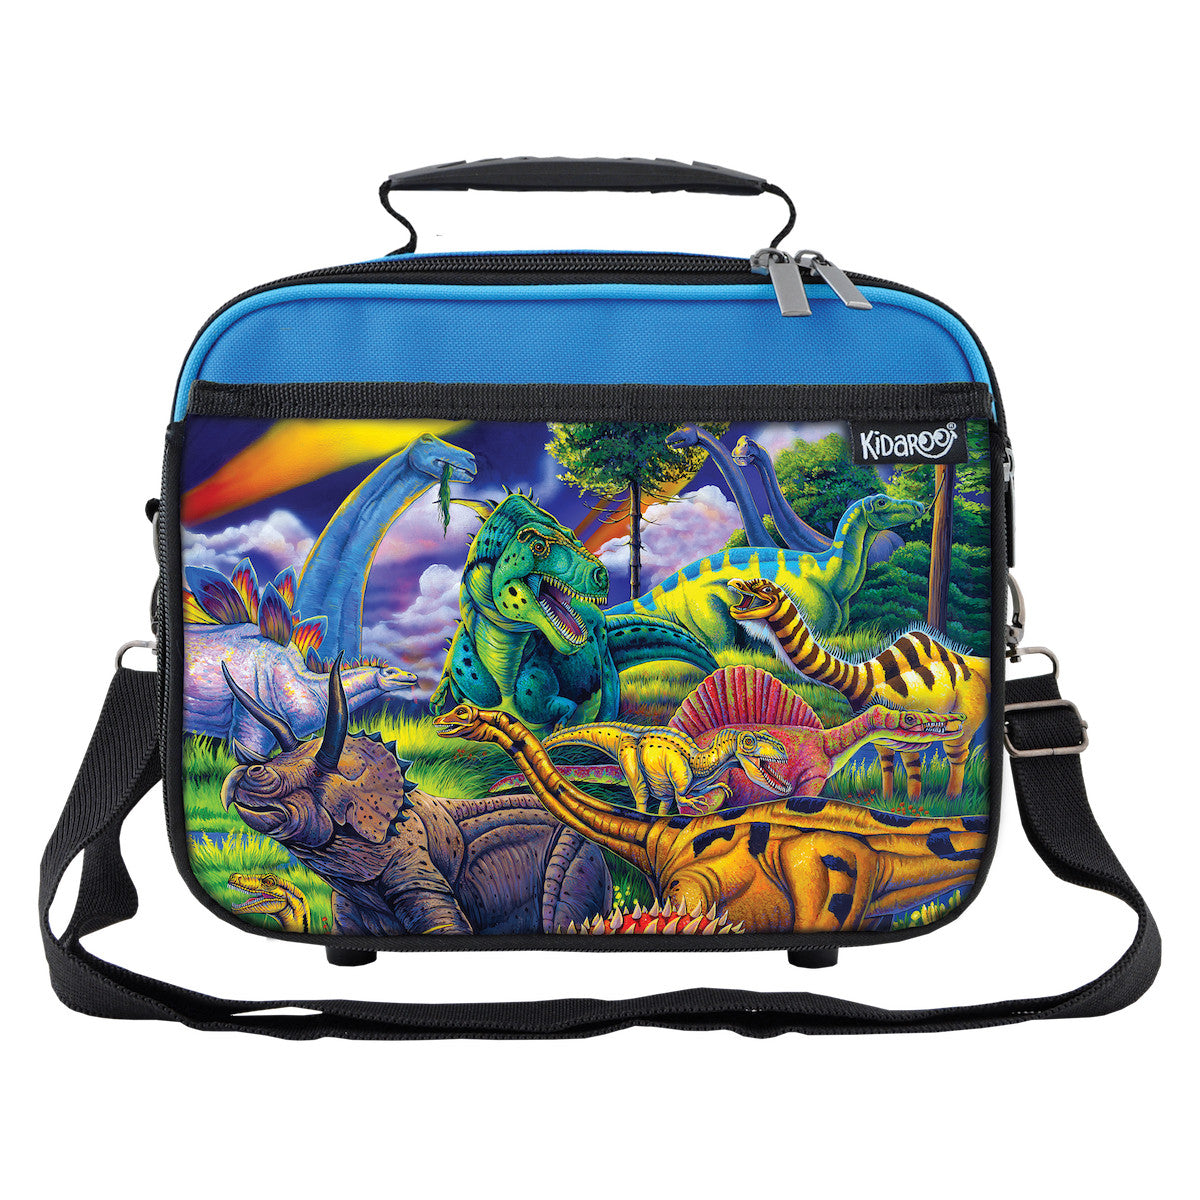 Dinosaur Jungle School Lunchbox, Tote Bag for Boys, Girls, Kids